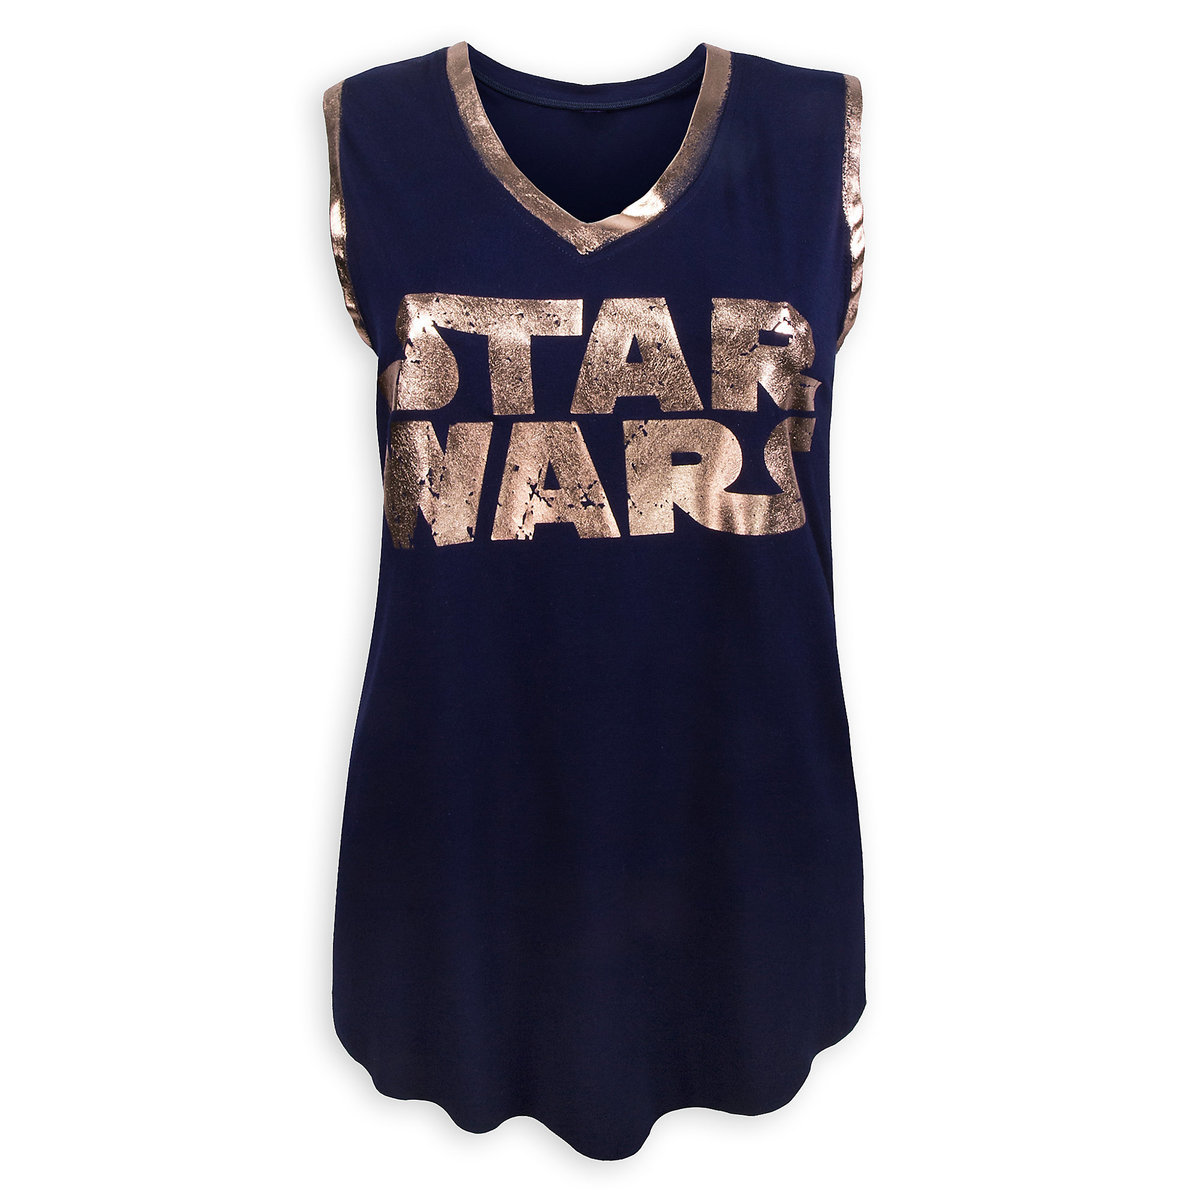 Disney Women's Shirt - Star Wars Tank Top